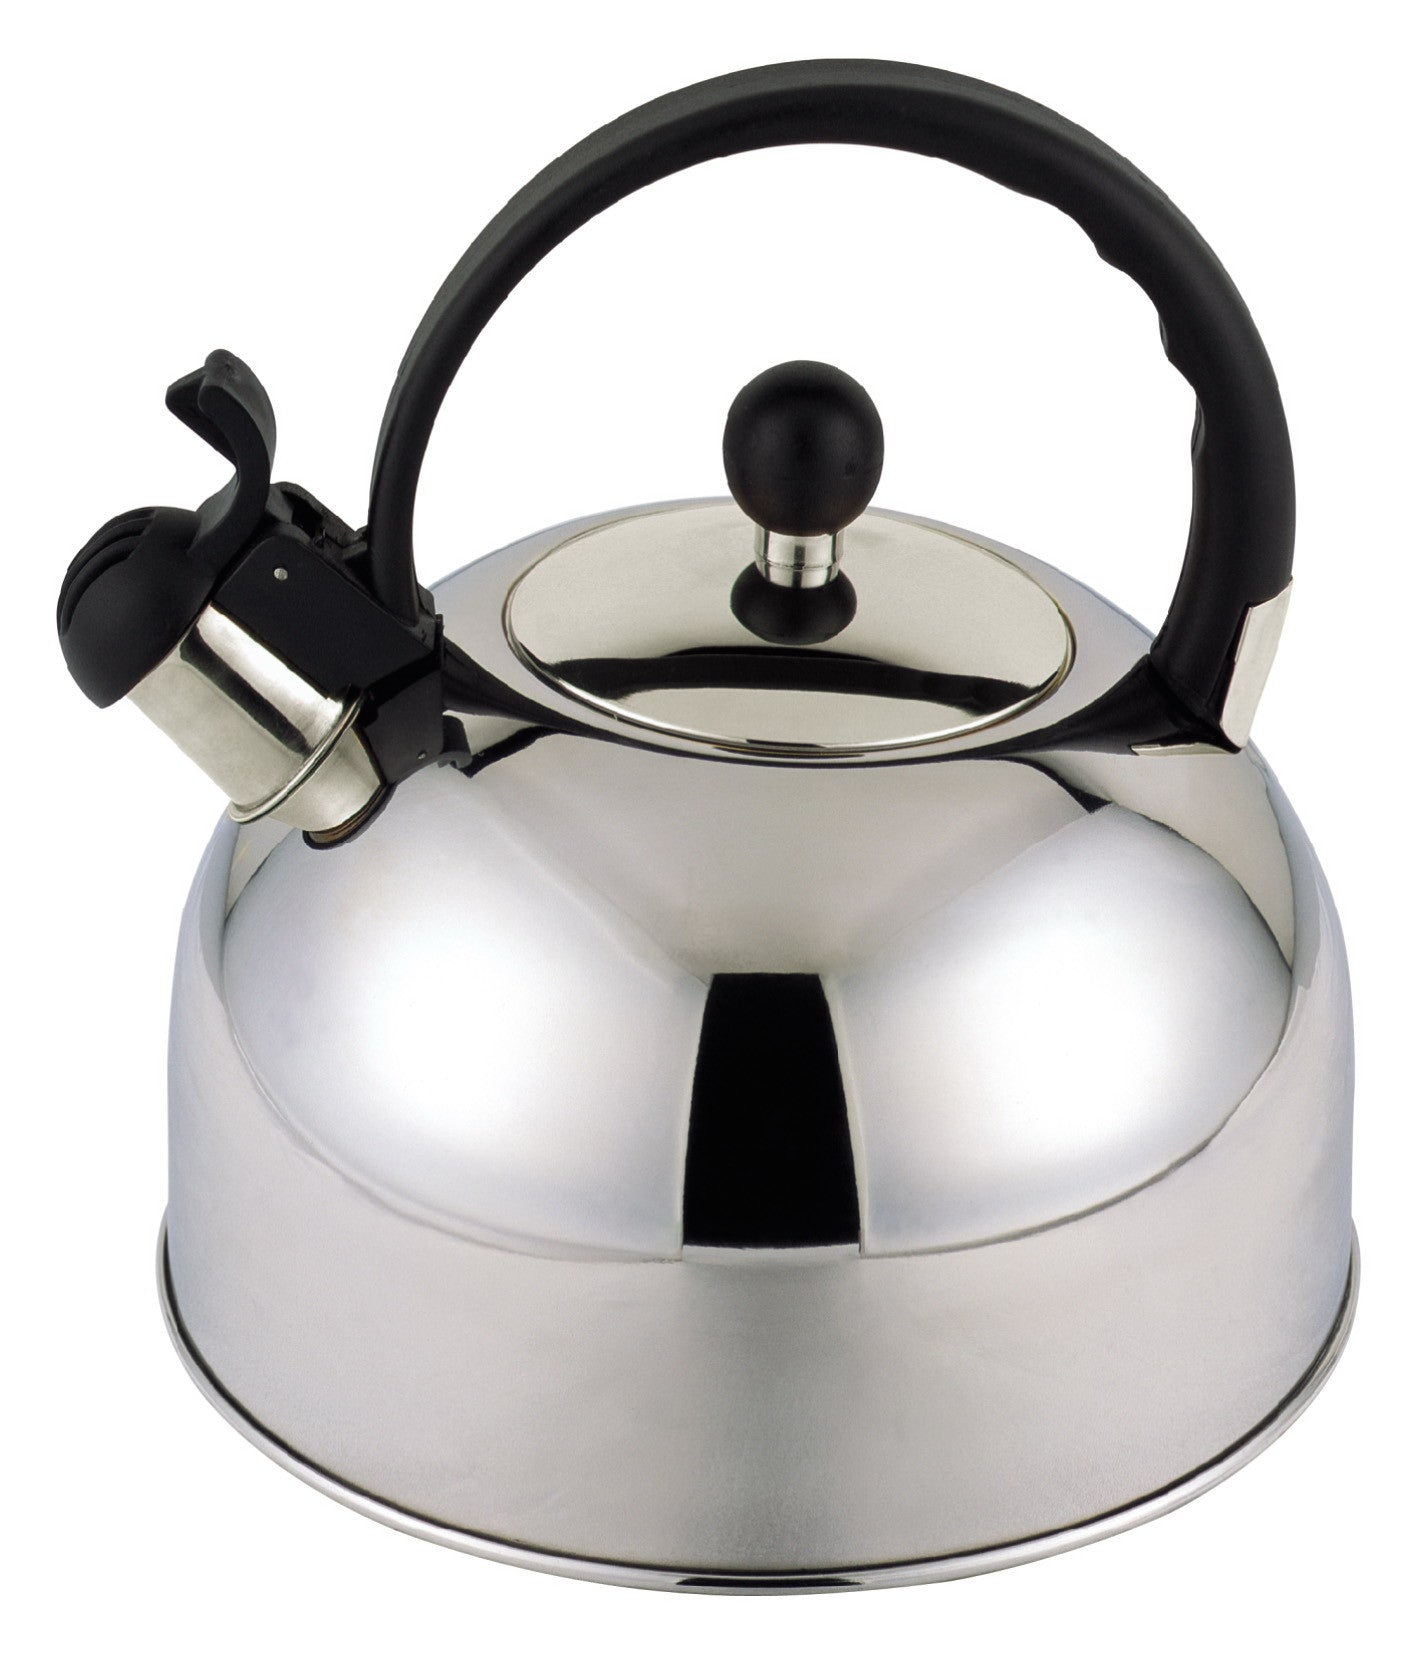 Sabichi Essential Whistling Kettle 2.5l-93820 - Homely Nigeria